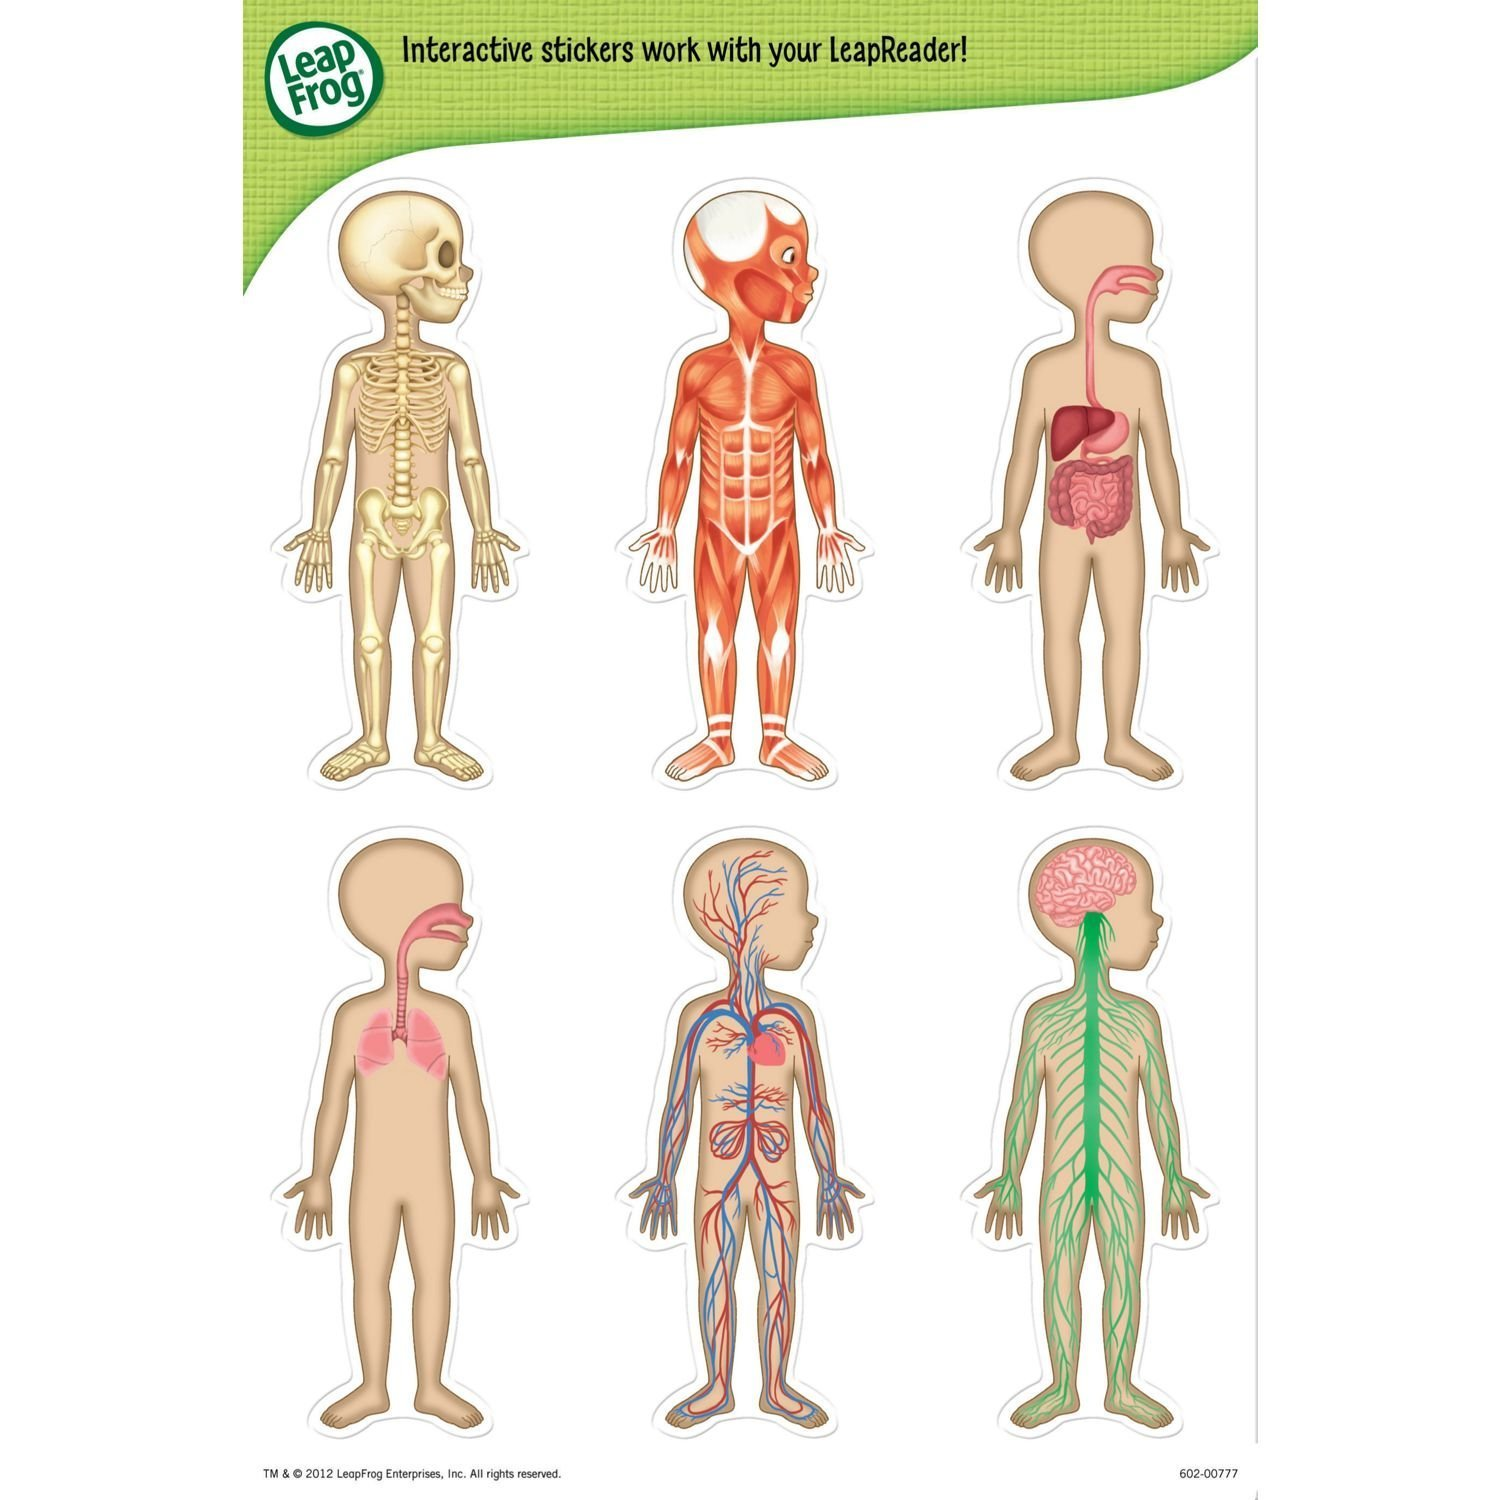 LeapFrog LeapReader Interactive Human Body Discovery Set (works with Tag) by LeapFrog (Image #5)